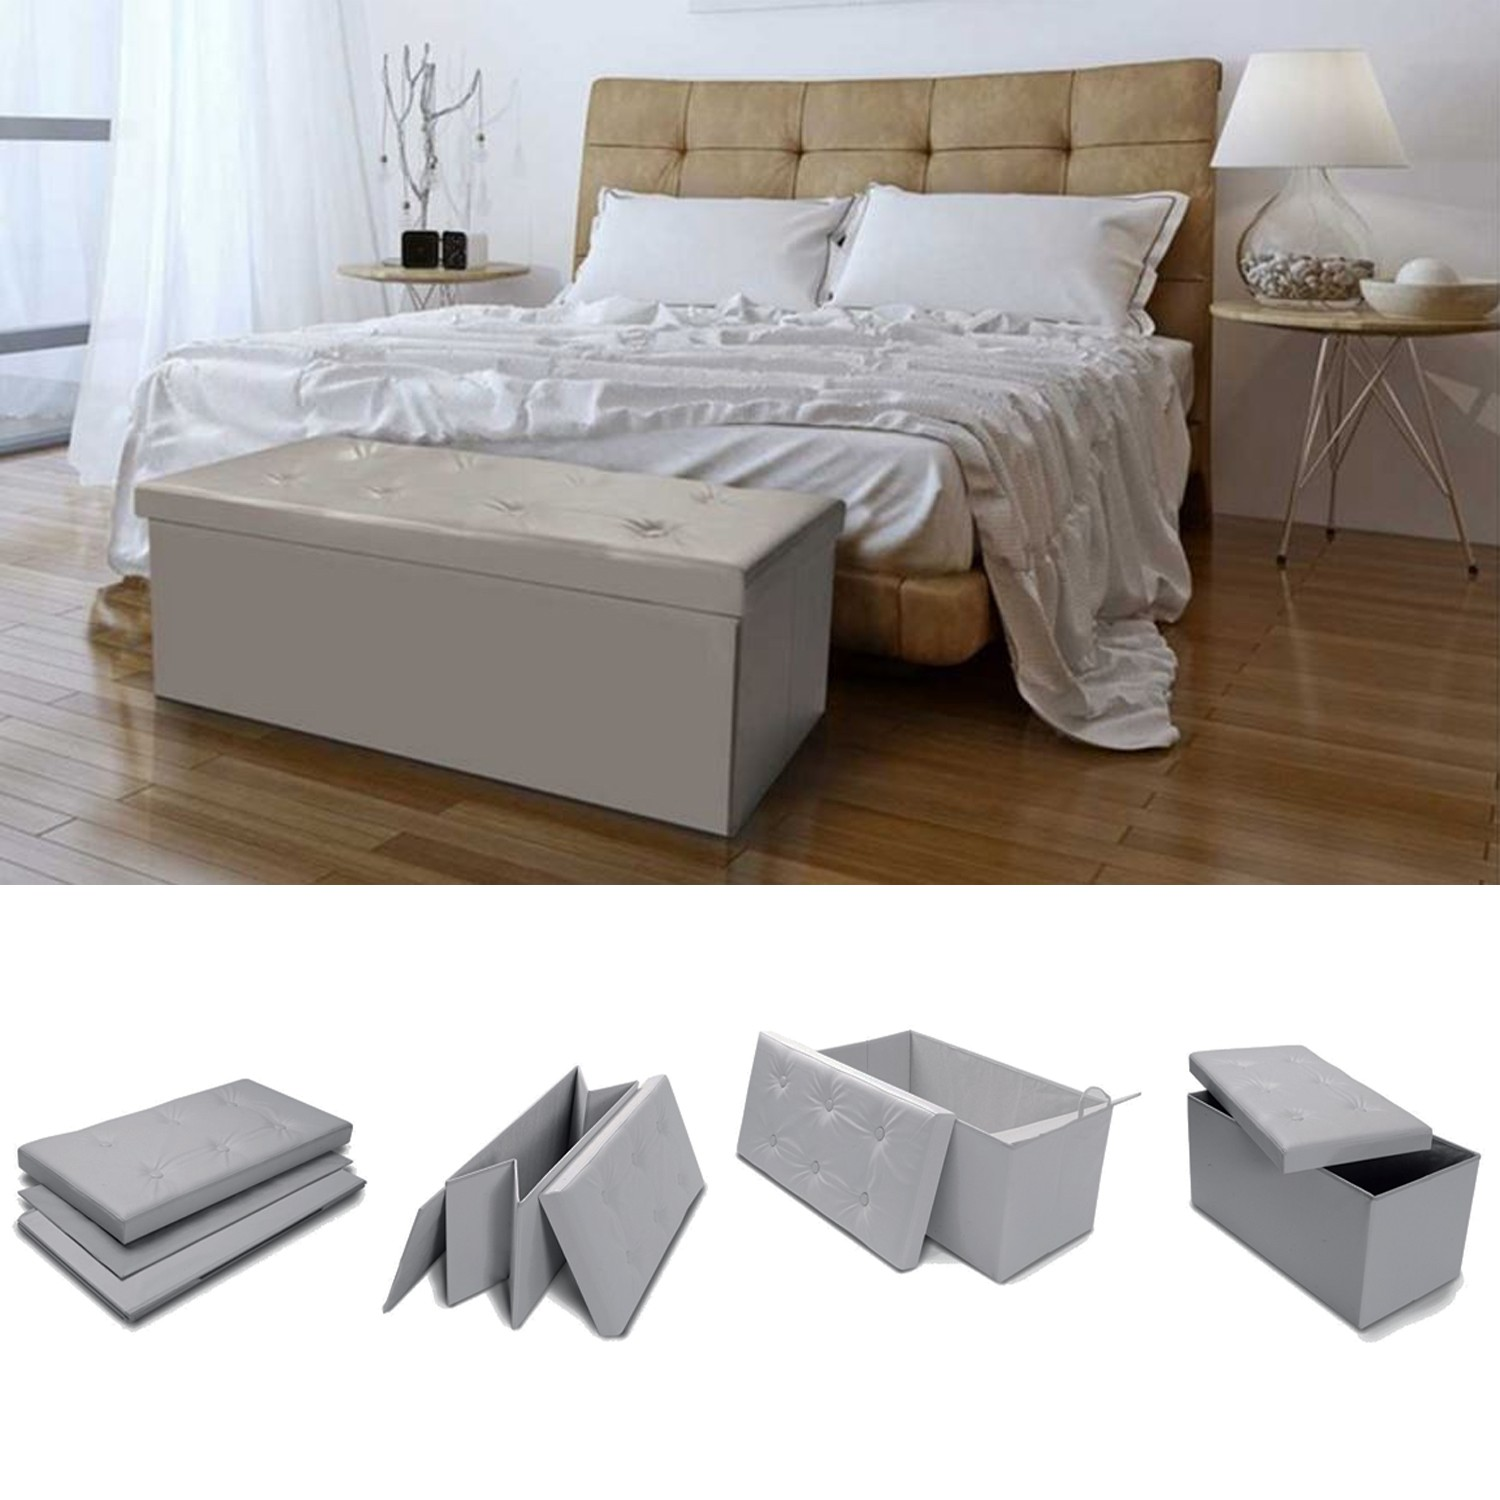 banc coffre rangement pvc taupe 100x38x38 cm pliable accessoires m. Black Bedroom Furniture Sets. Home Design Ideas